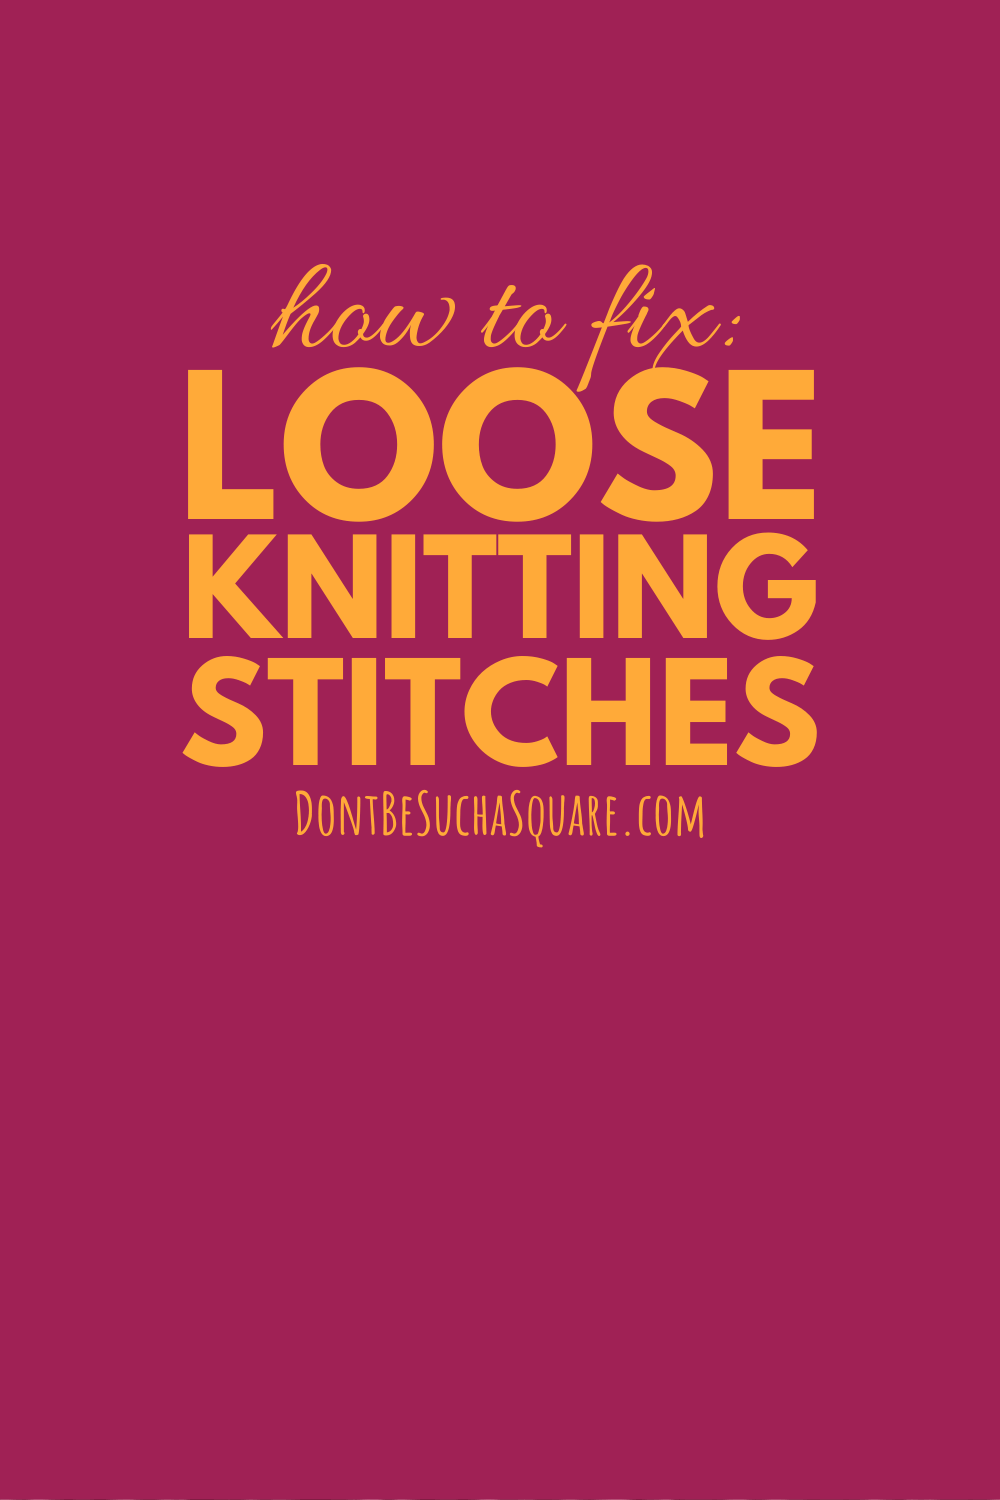 How to fix Loose Knitting Stitches